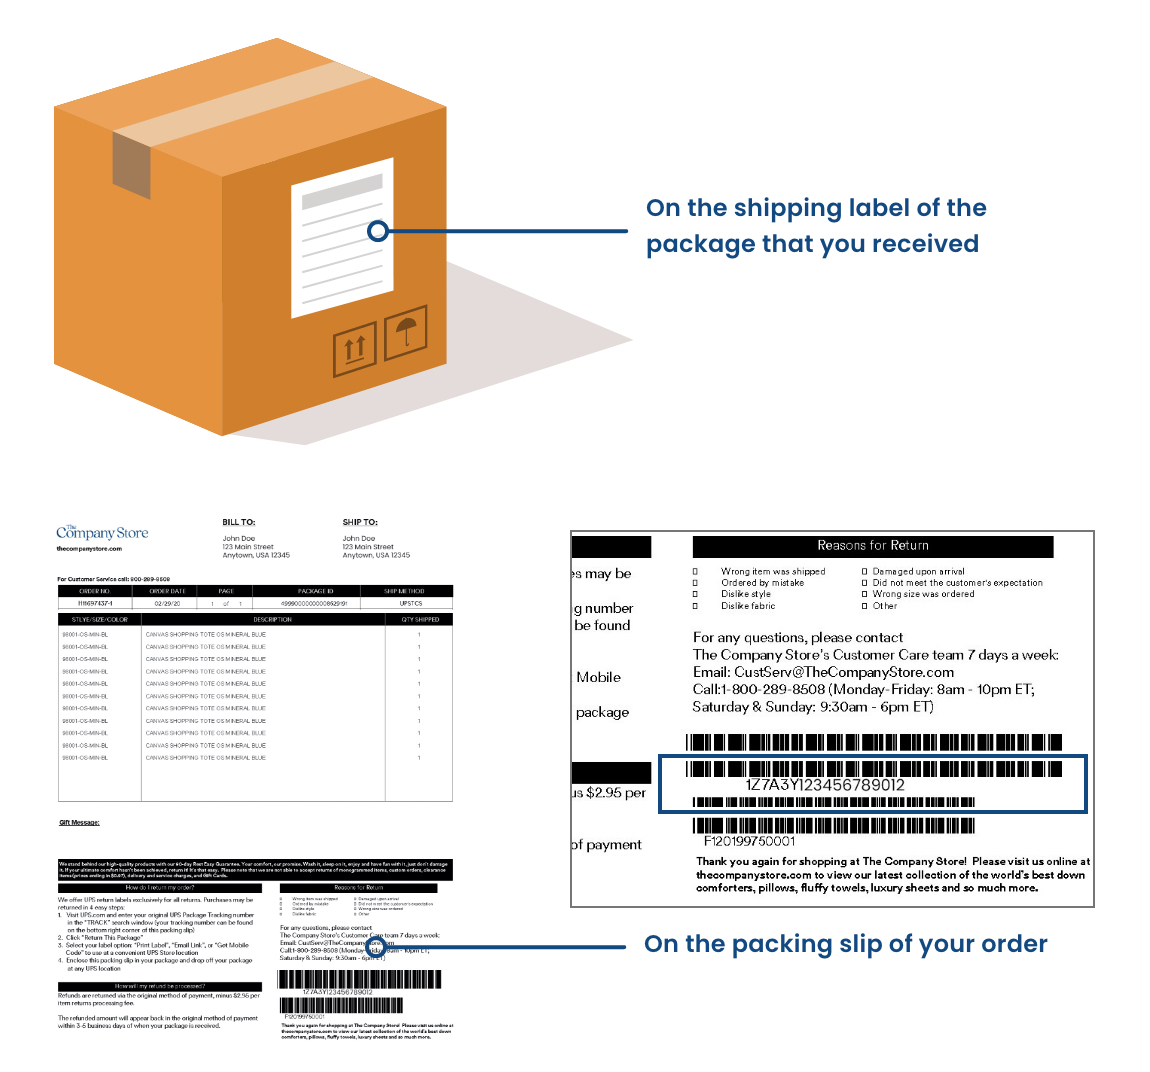 UPS Tracking Number